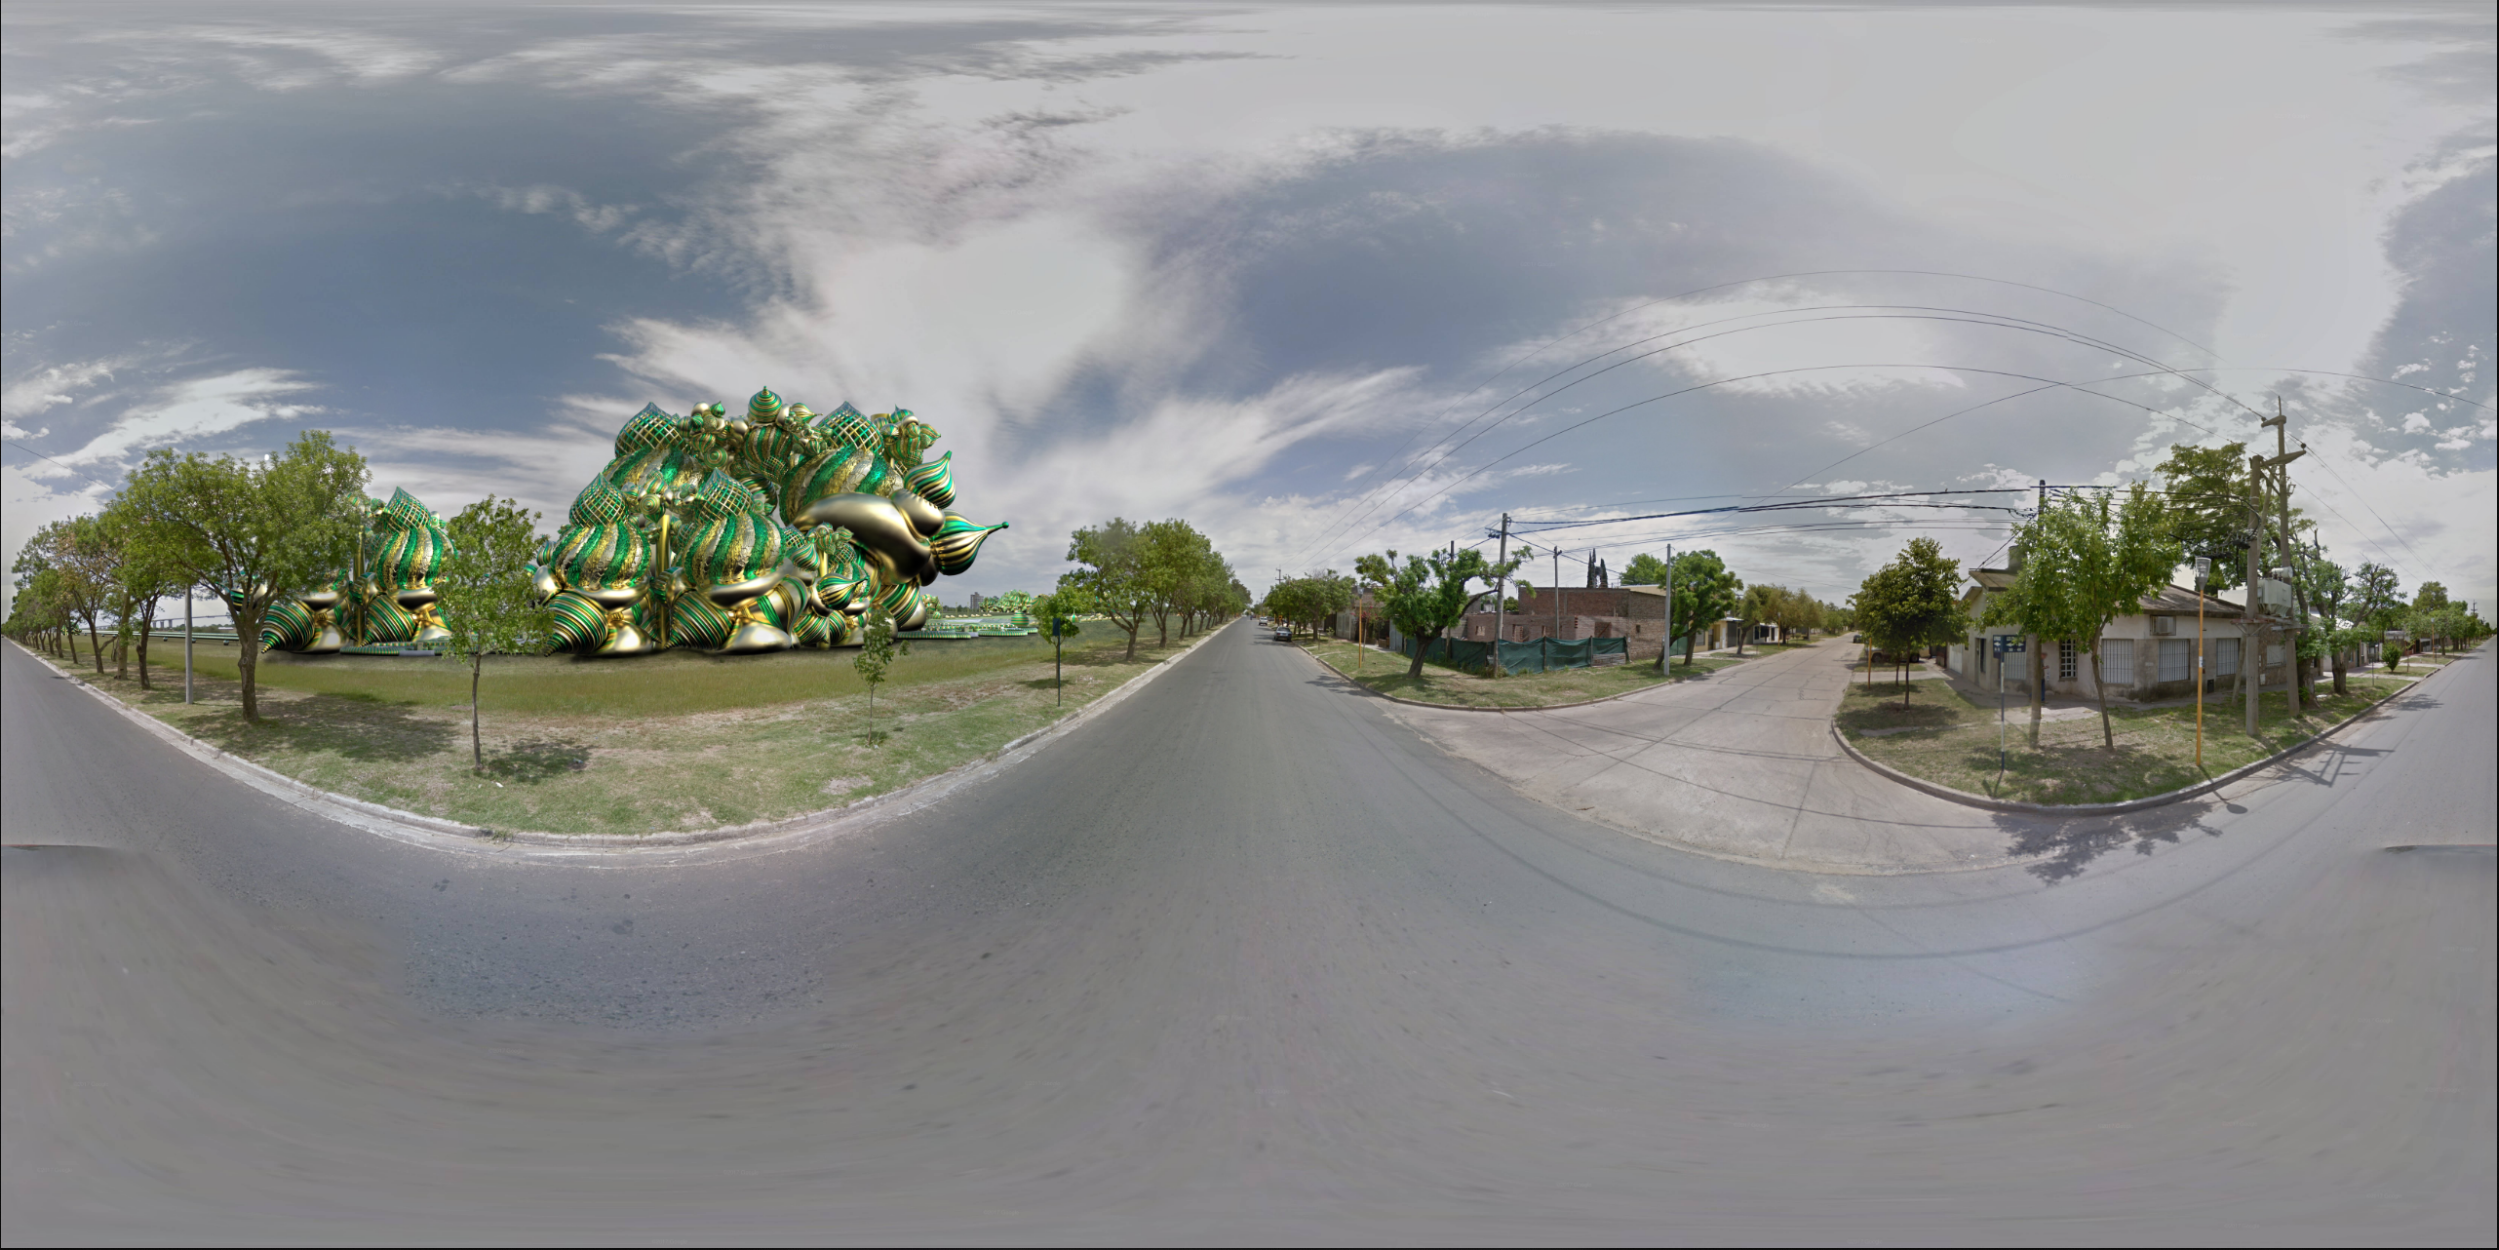 Raw 360 Degree Street View 01: South East Side